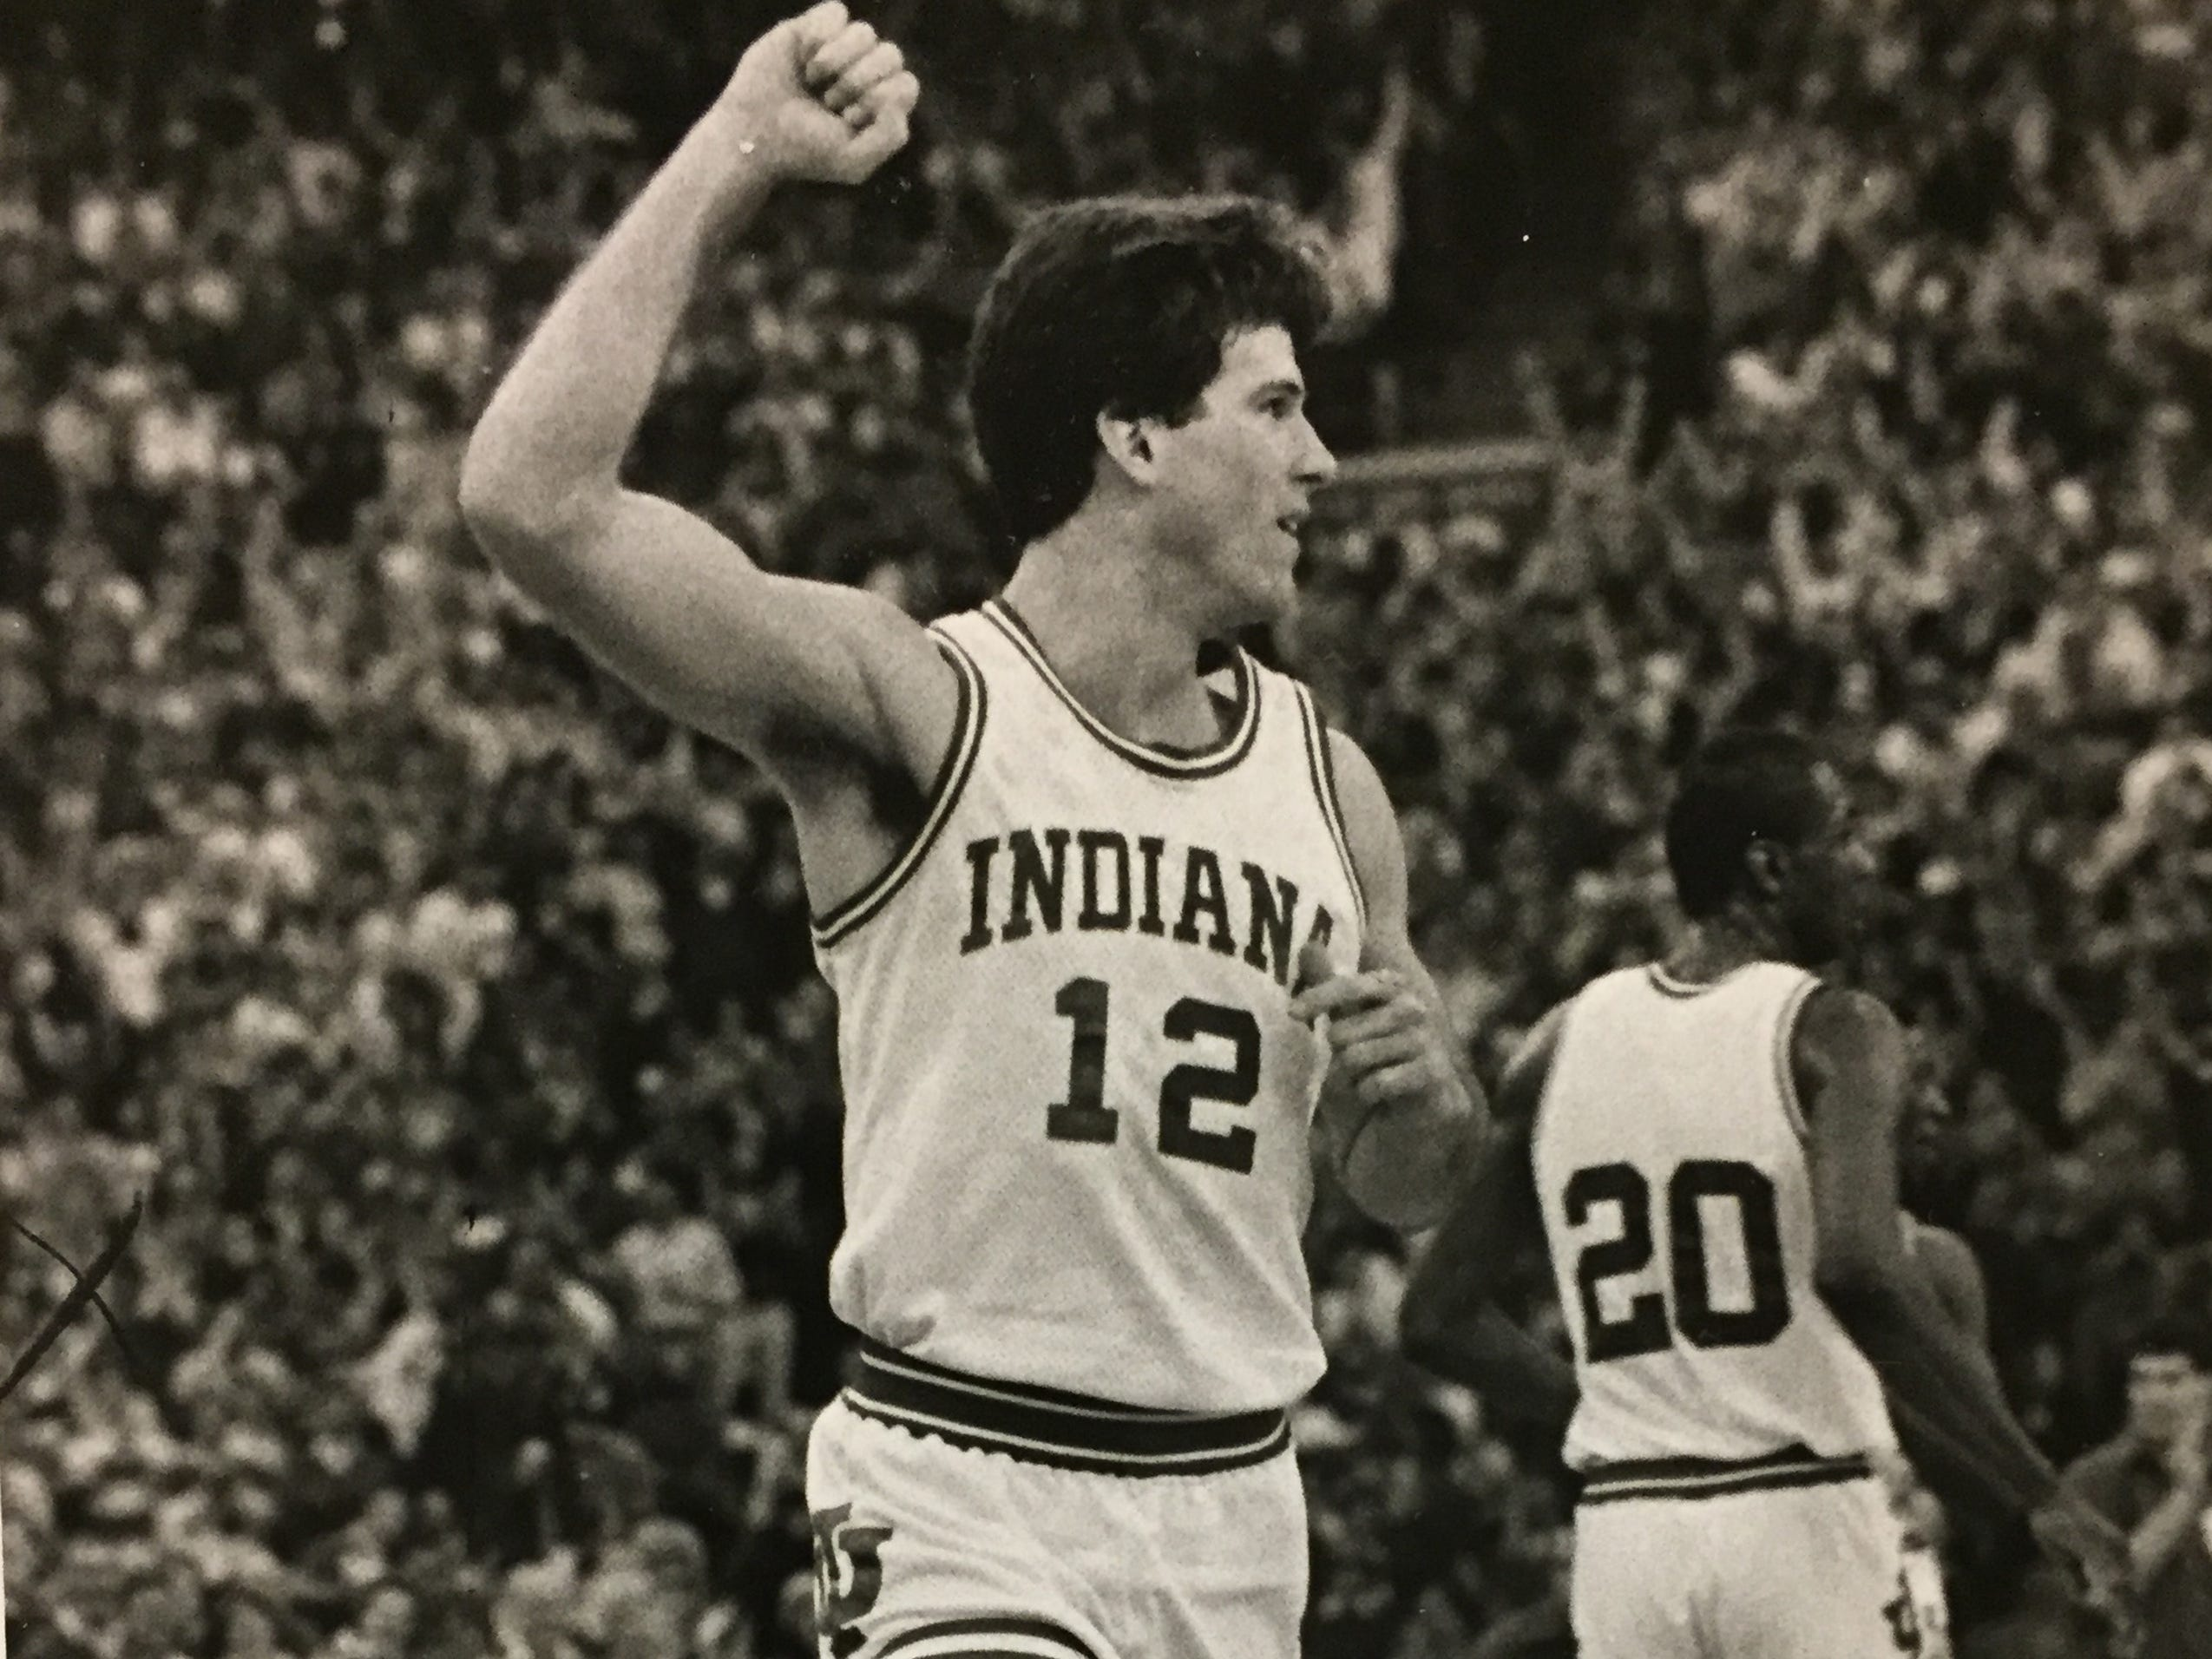 Steve Alford celebrates during IU's win over Auburn, March 14, 1987.